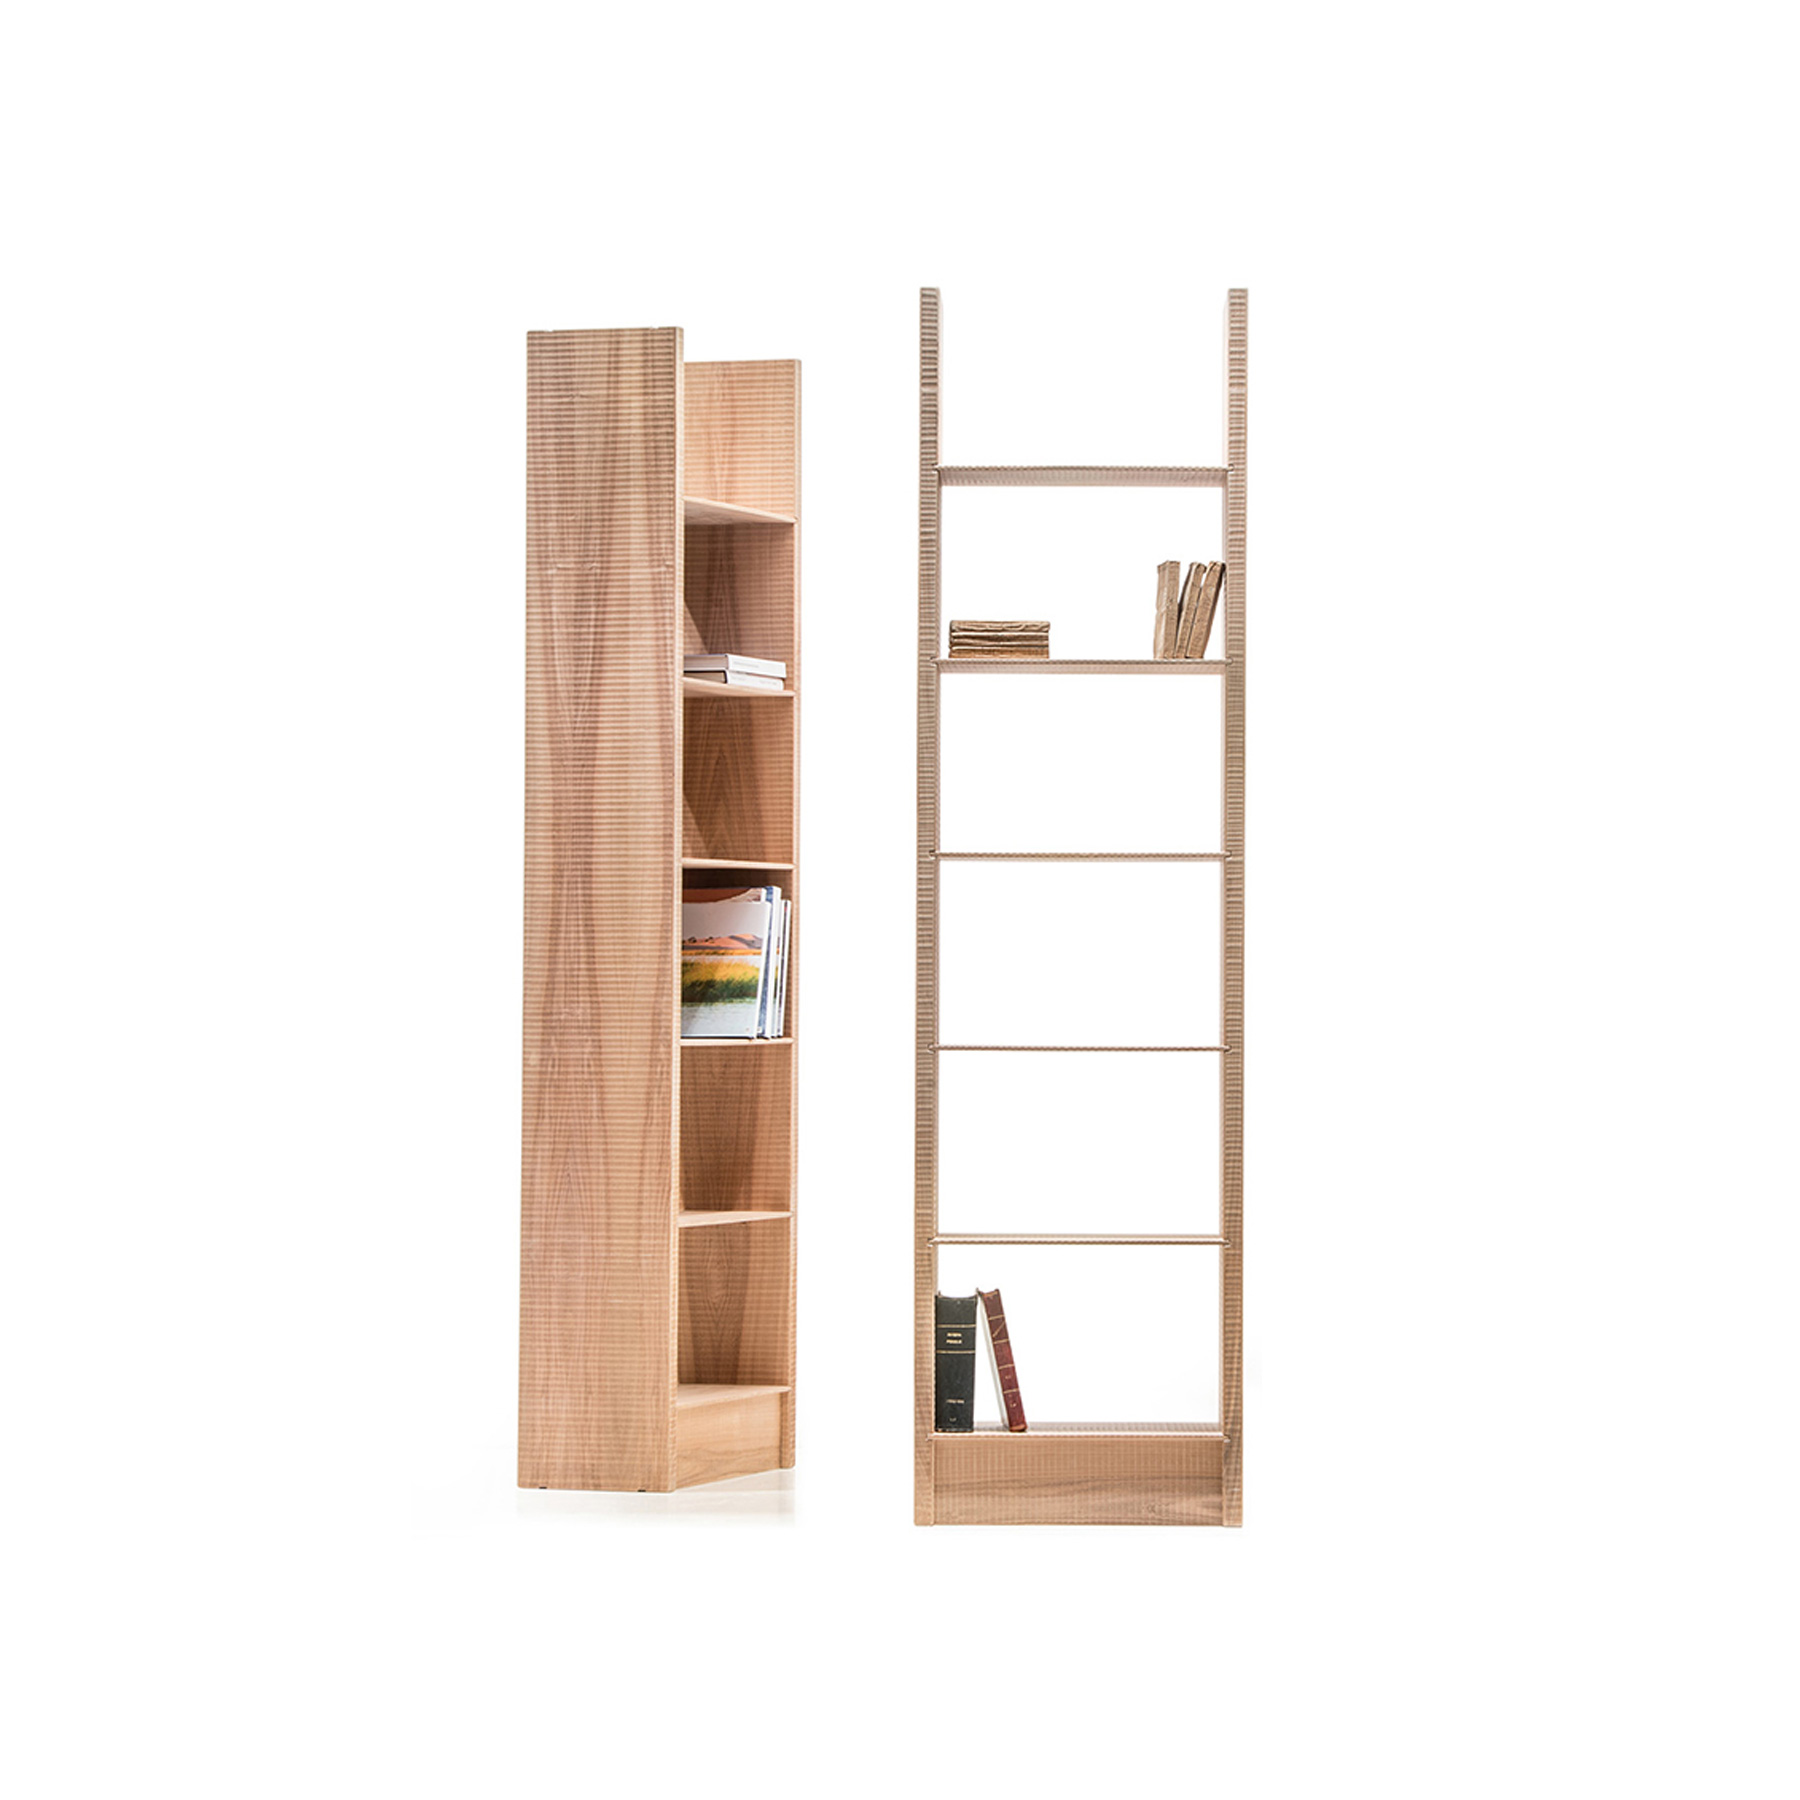 Gottinga Bookcase - <p>Gottinga is a modular bookcase is solid wood with shelves at fixed heights. It comes finished by sanding or hand planing.<br /> The entire manufacturing and finishing process is carried out manually in our workshop. The wood used for this item is maple, a wood from the temperate European zone traditionally used for musical instruments; it has a subtle, fine grain, very distinctive, and a characteristic white colour. This distinctive colour, visible as we work the wood, tends to turn yellow rapidly, unless treated appropriately to preserve the original whiteness. Customise and made with Linden wood, Italian walnut, European cherry, Slavonian oak.</p>  | Matter of Stuff